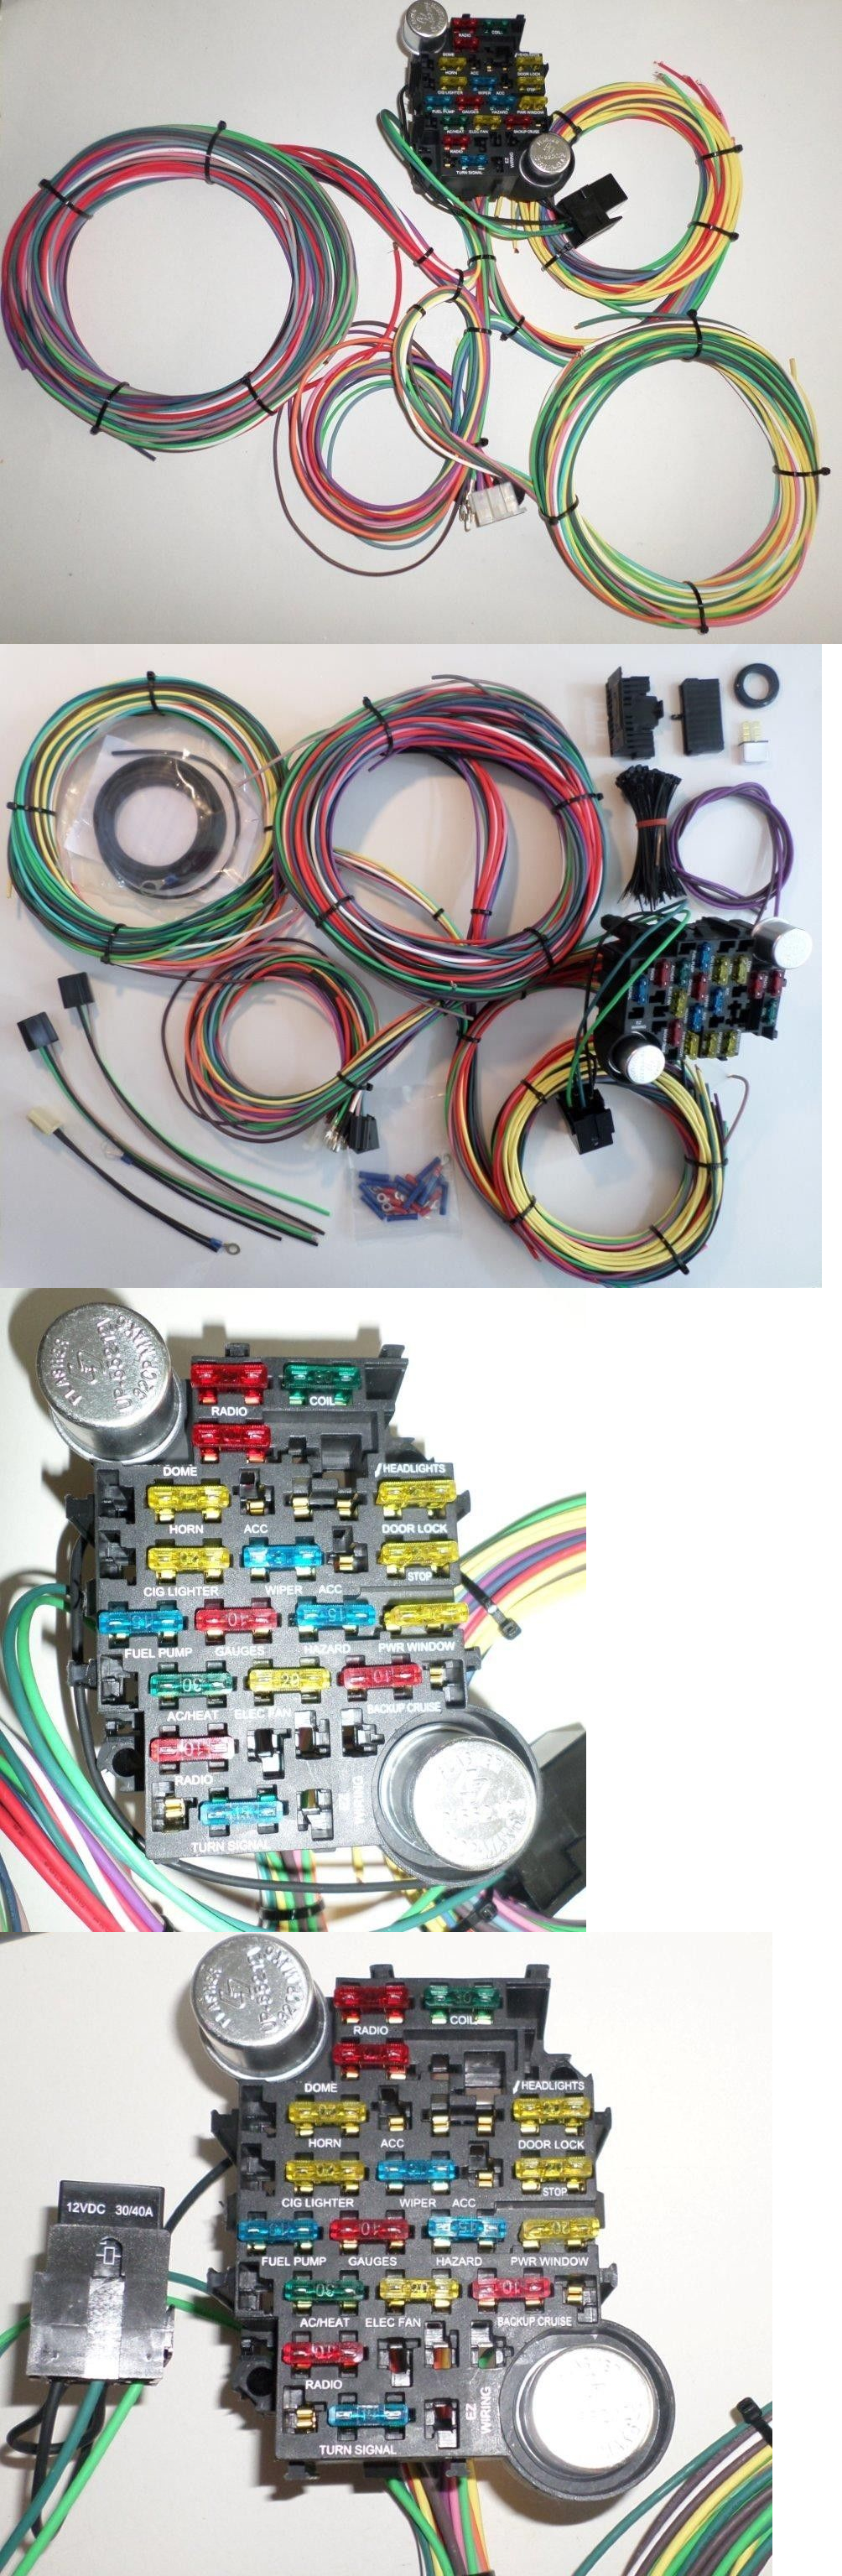 740418d052d65d4b545381b67aadc1a2 other car electronics accs 21 circuit ez wiring harness chevy mopar